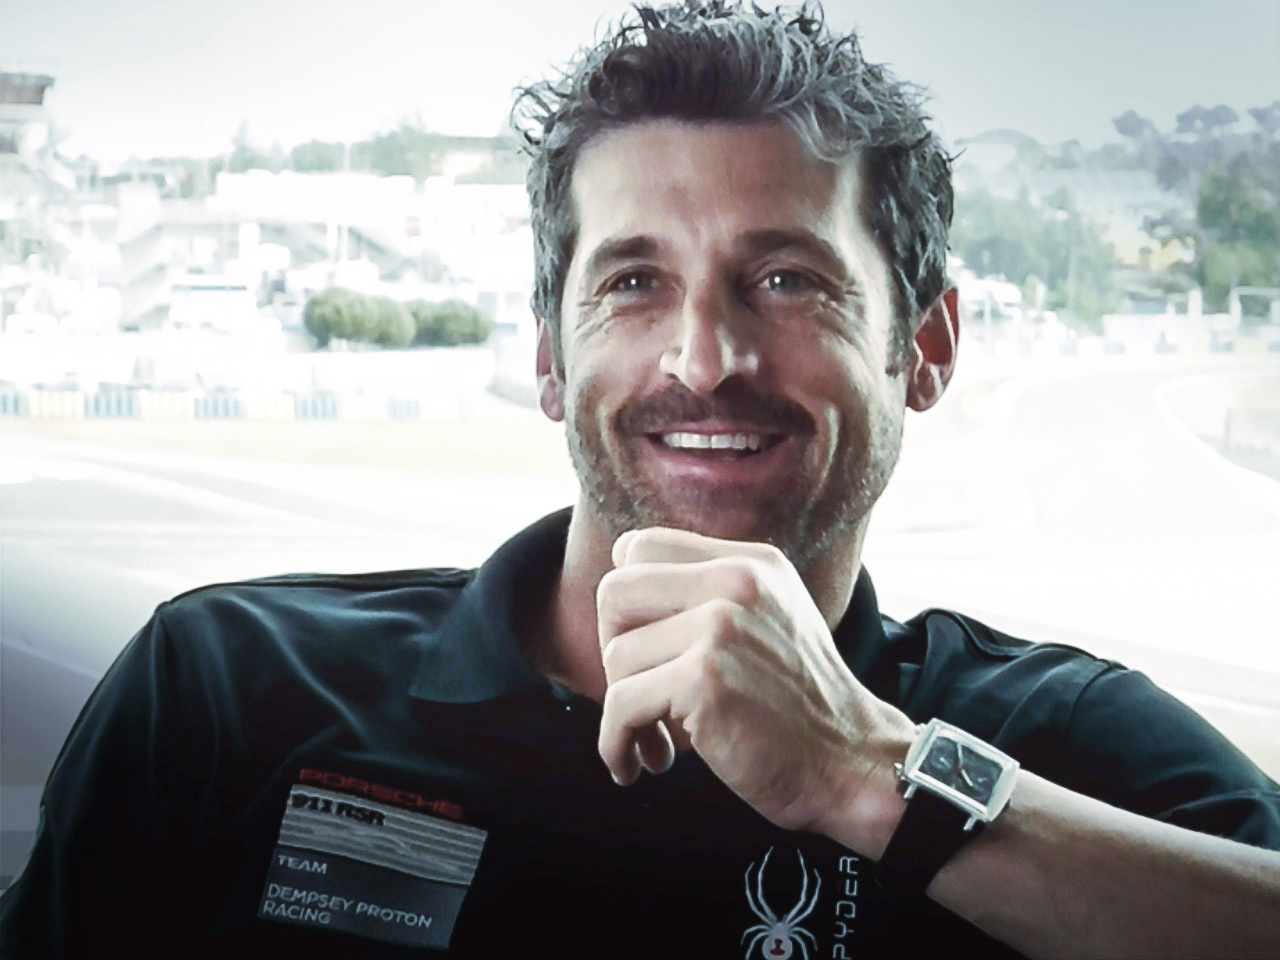 Porsche Patrick Dempsey: The interview